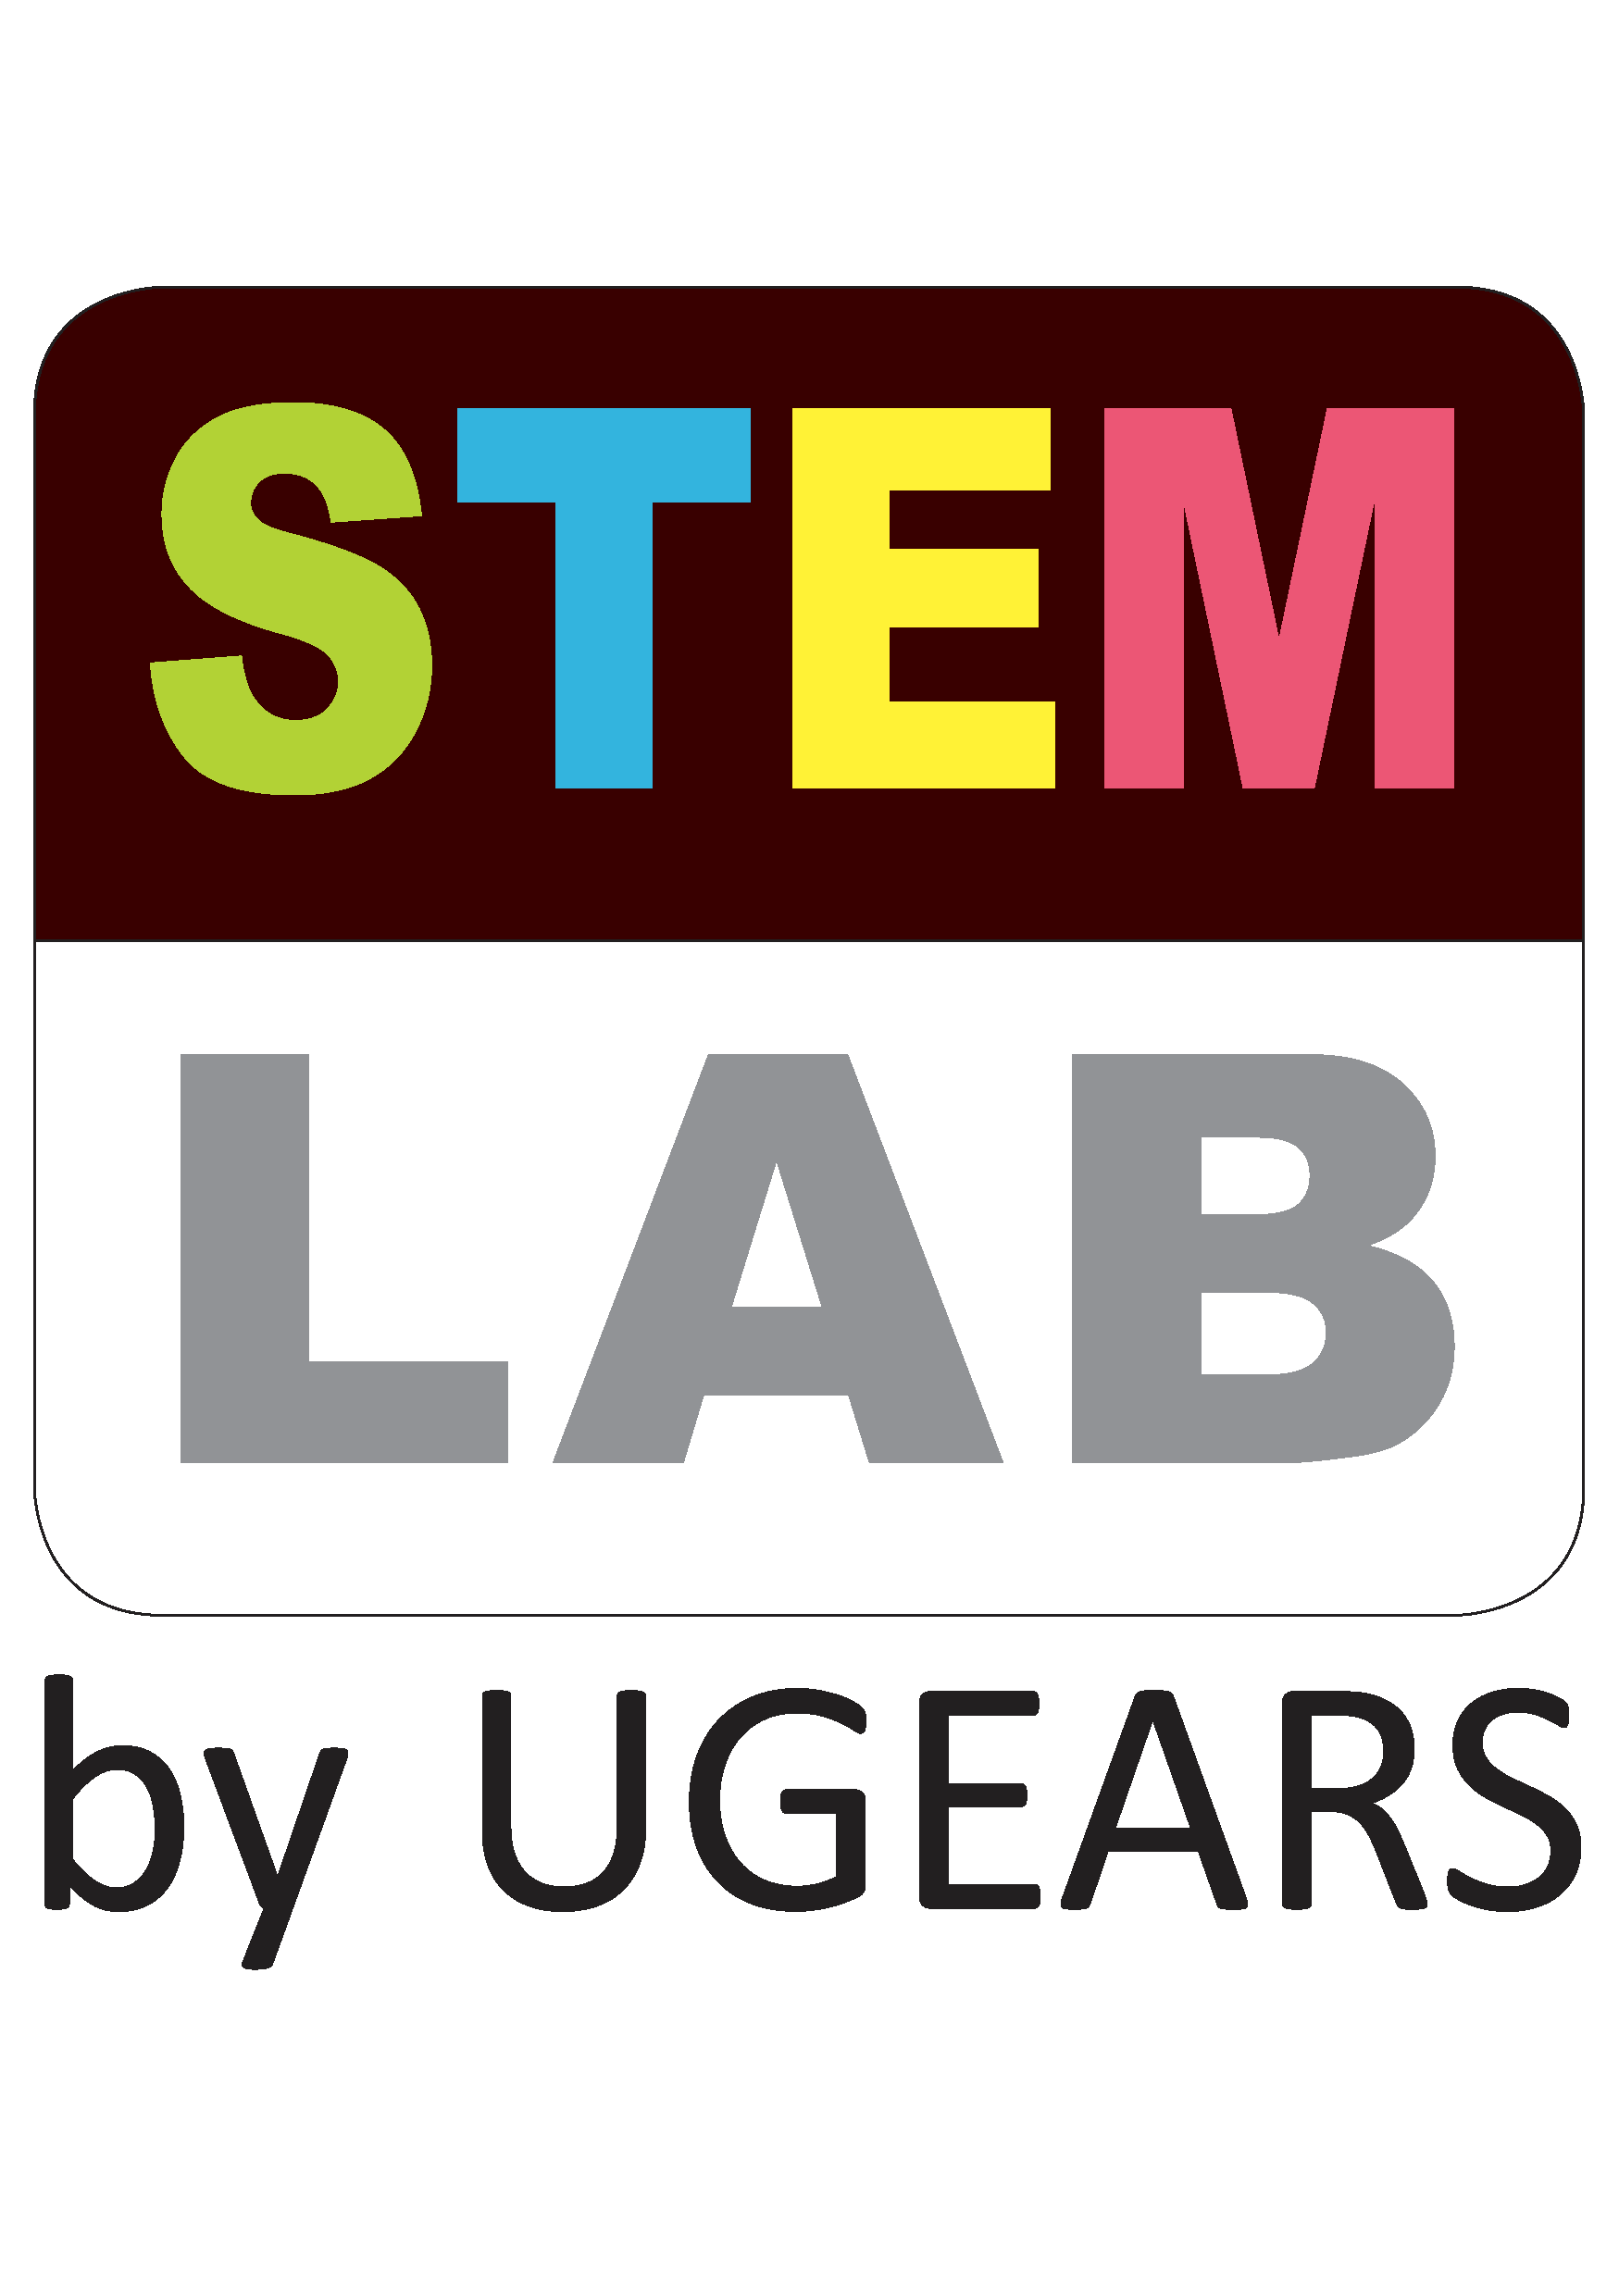 Logo-Ugears-STEM-lab-v1